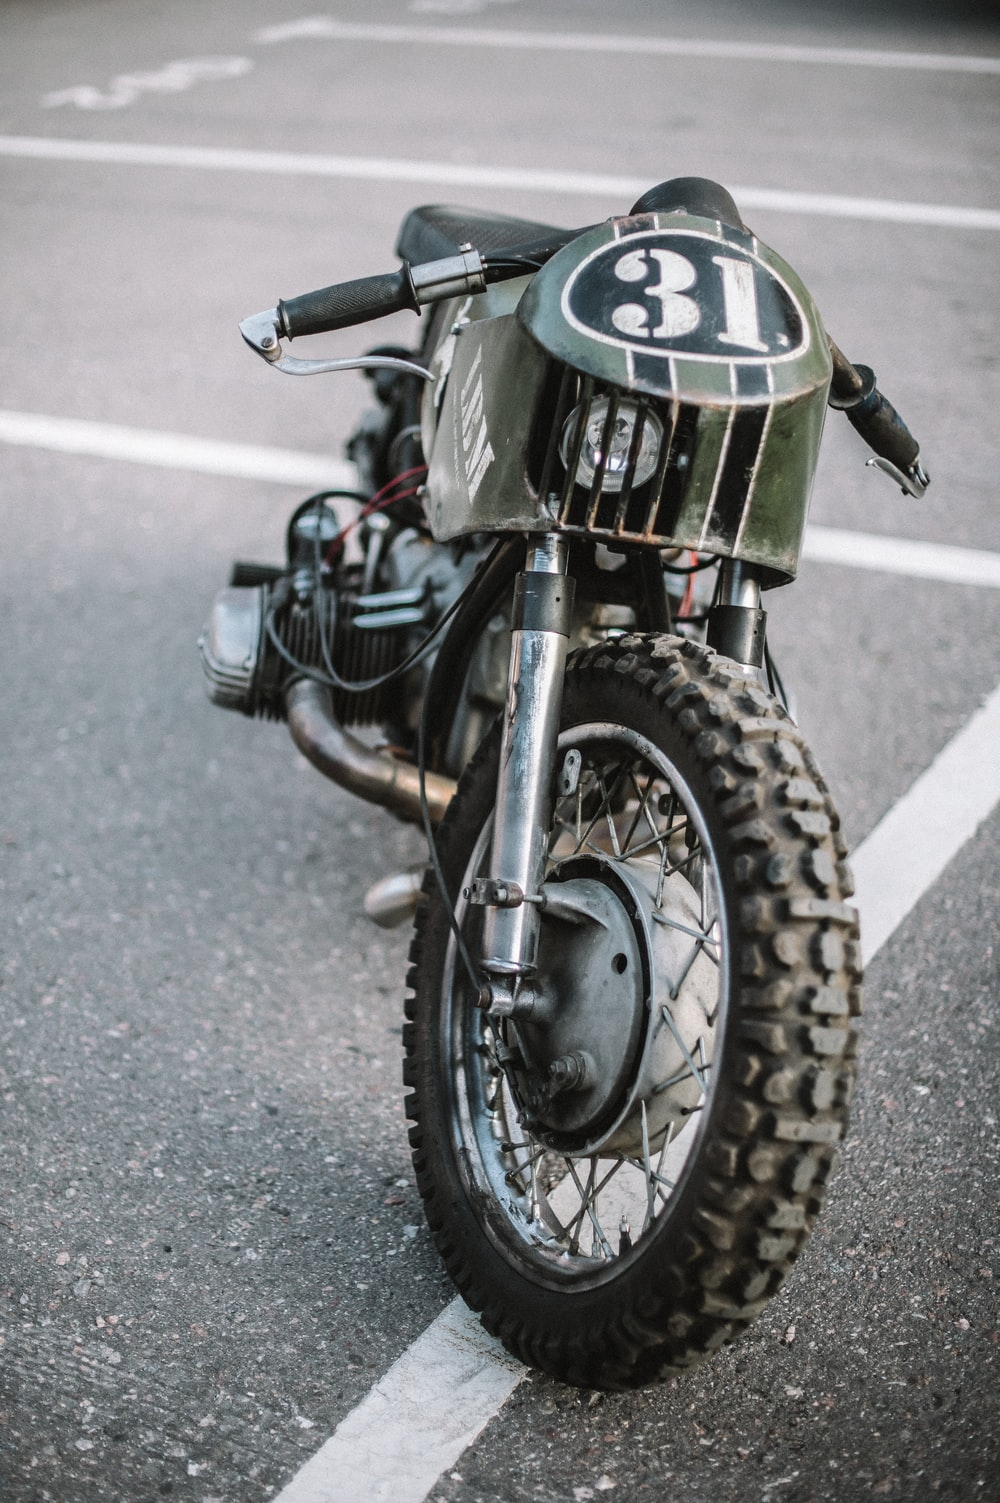 black and green motorcycle on road